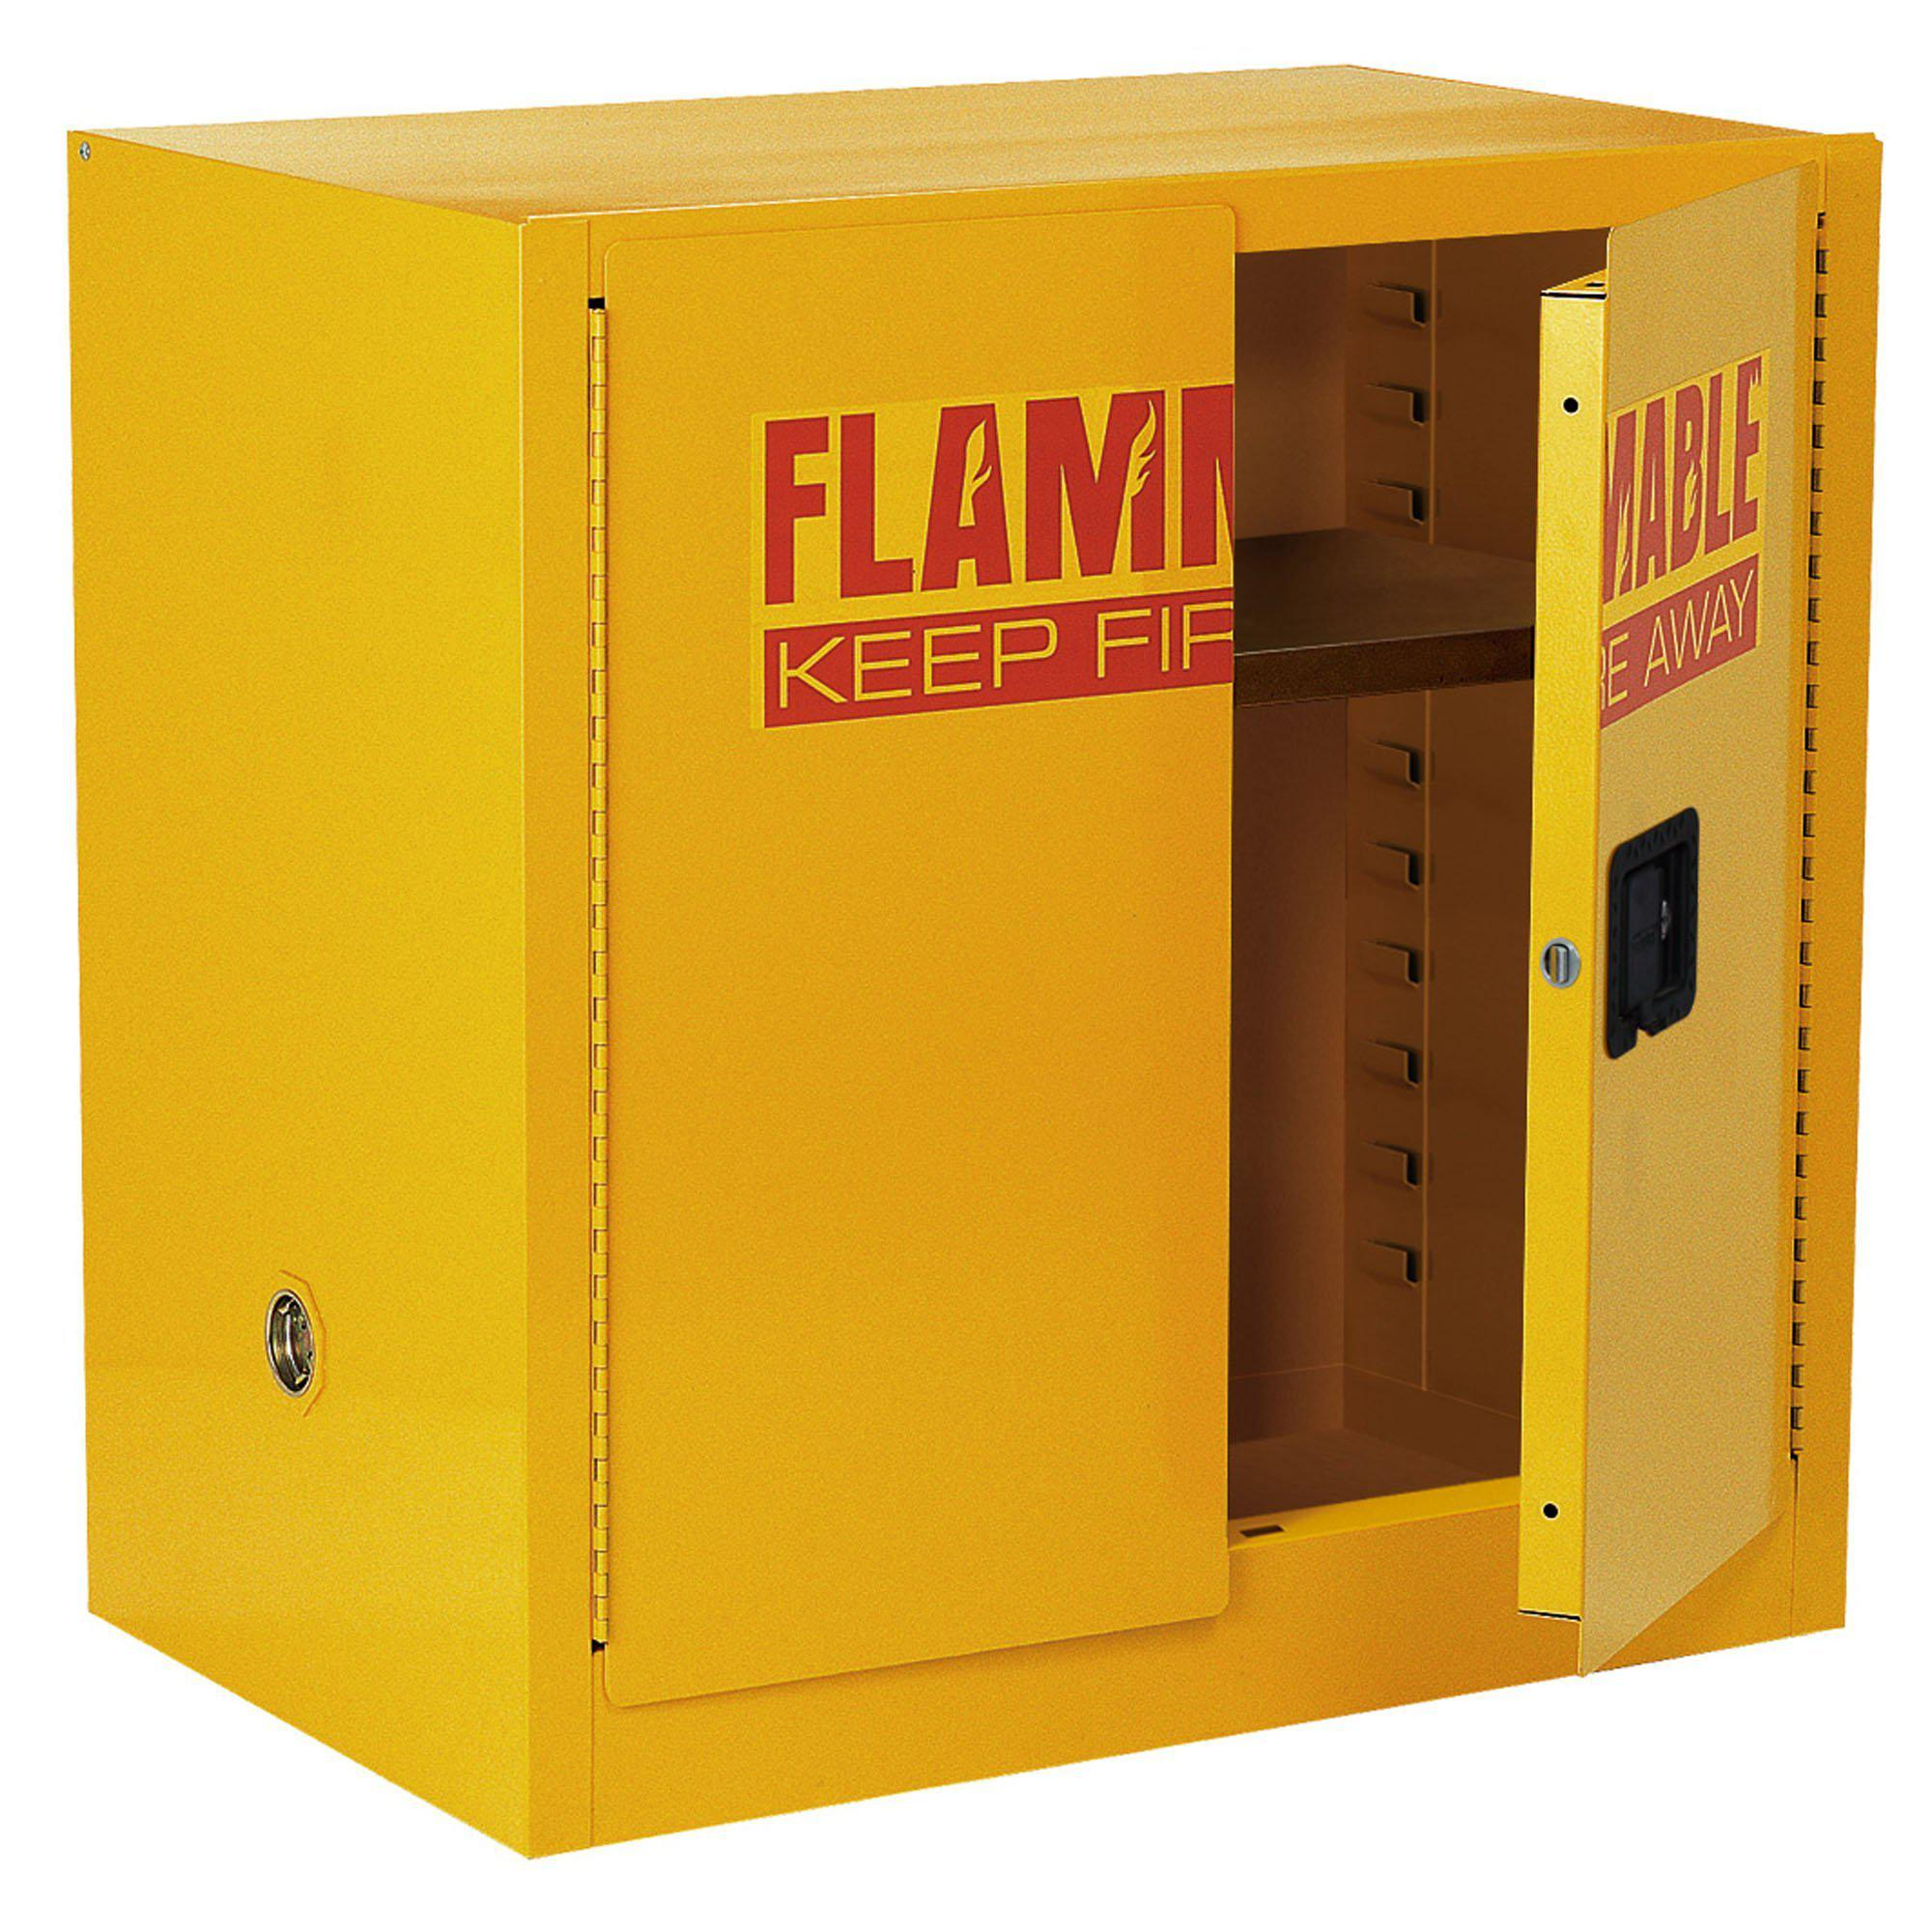 Compact Flammable Safety Cabinet With Double Door Manual Close 22 Gallon Capacity Safety Yellow 35 X 22 X 35